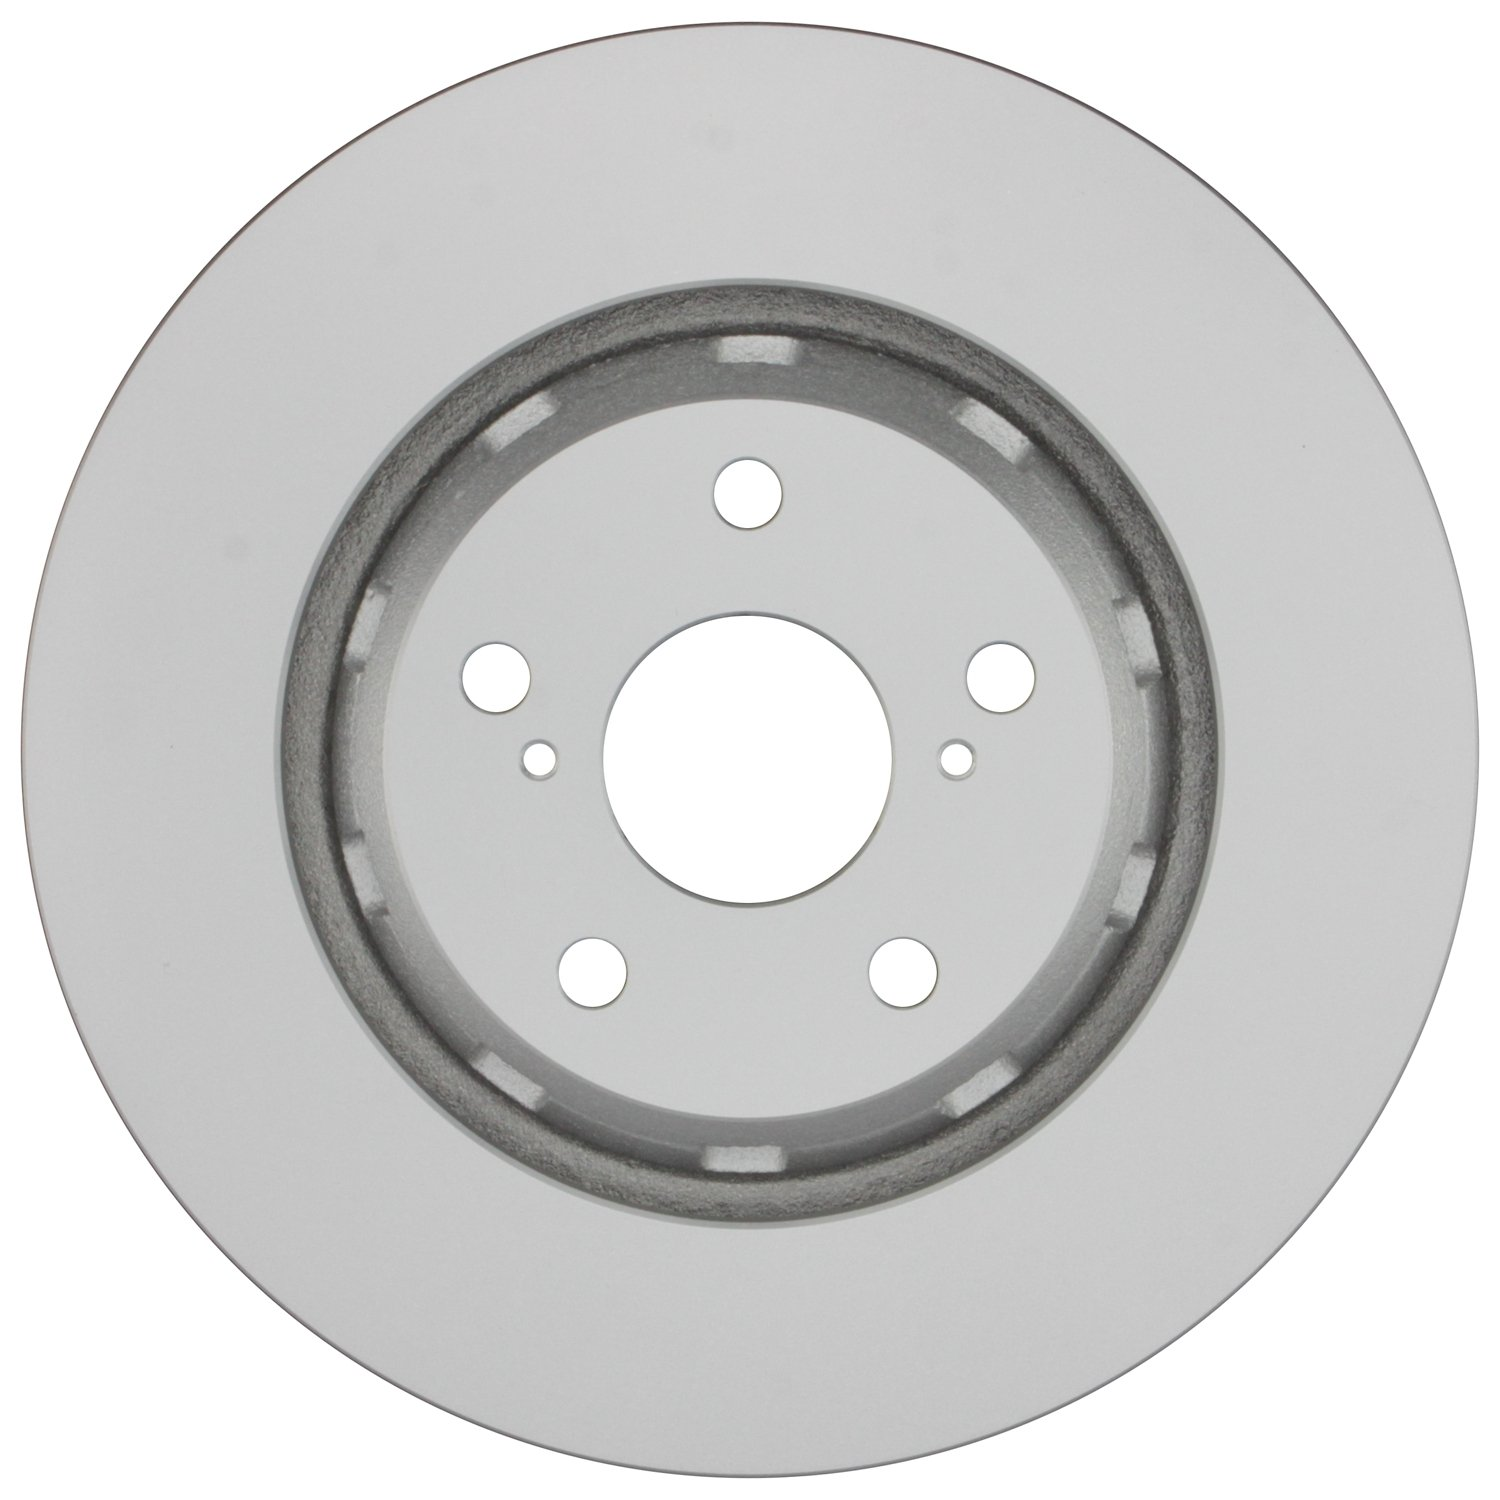 Bosch 50011506 QuietCast Premium Disc Brake Rotor